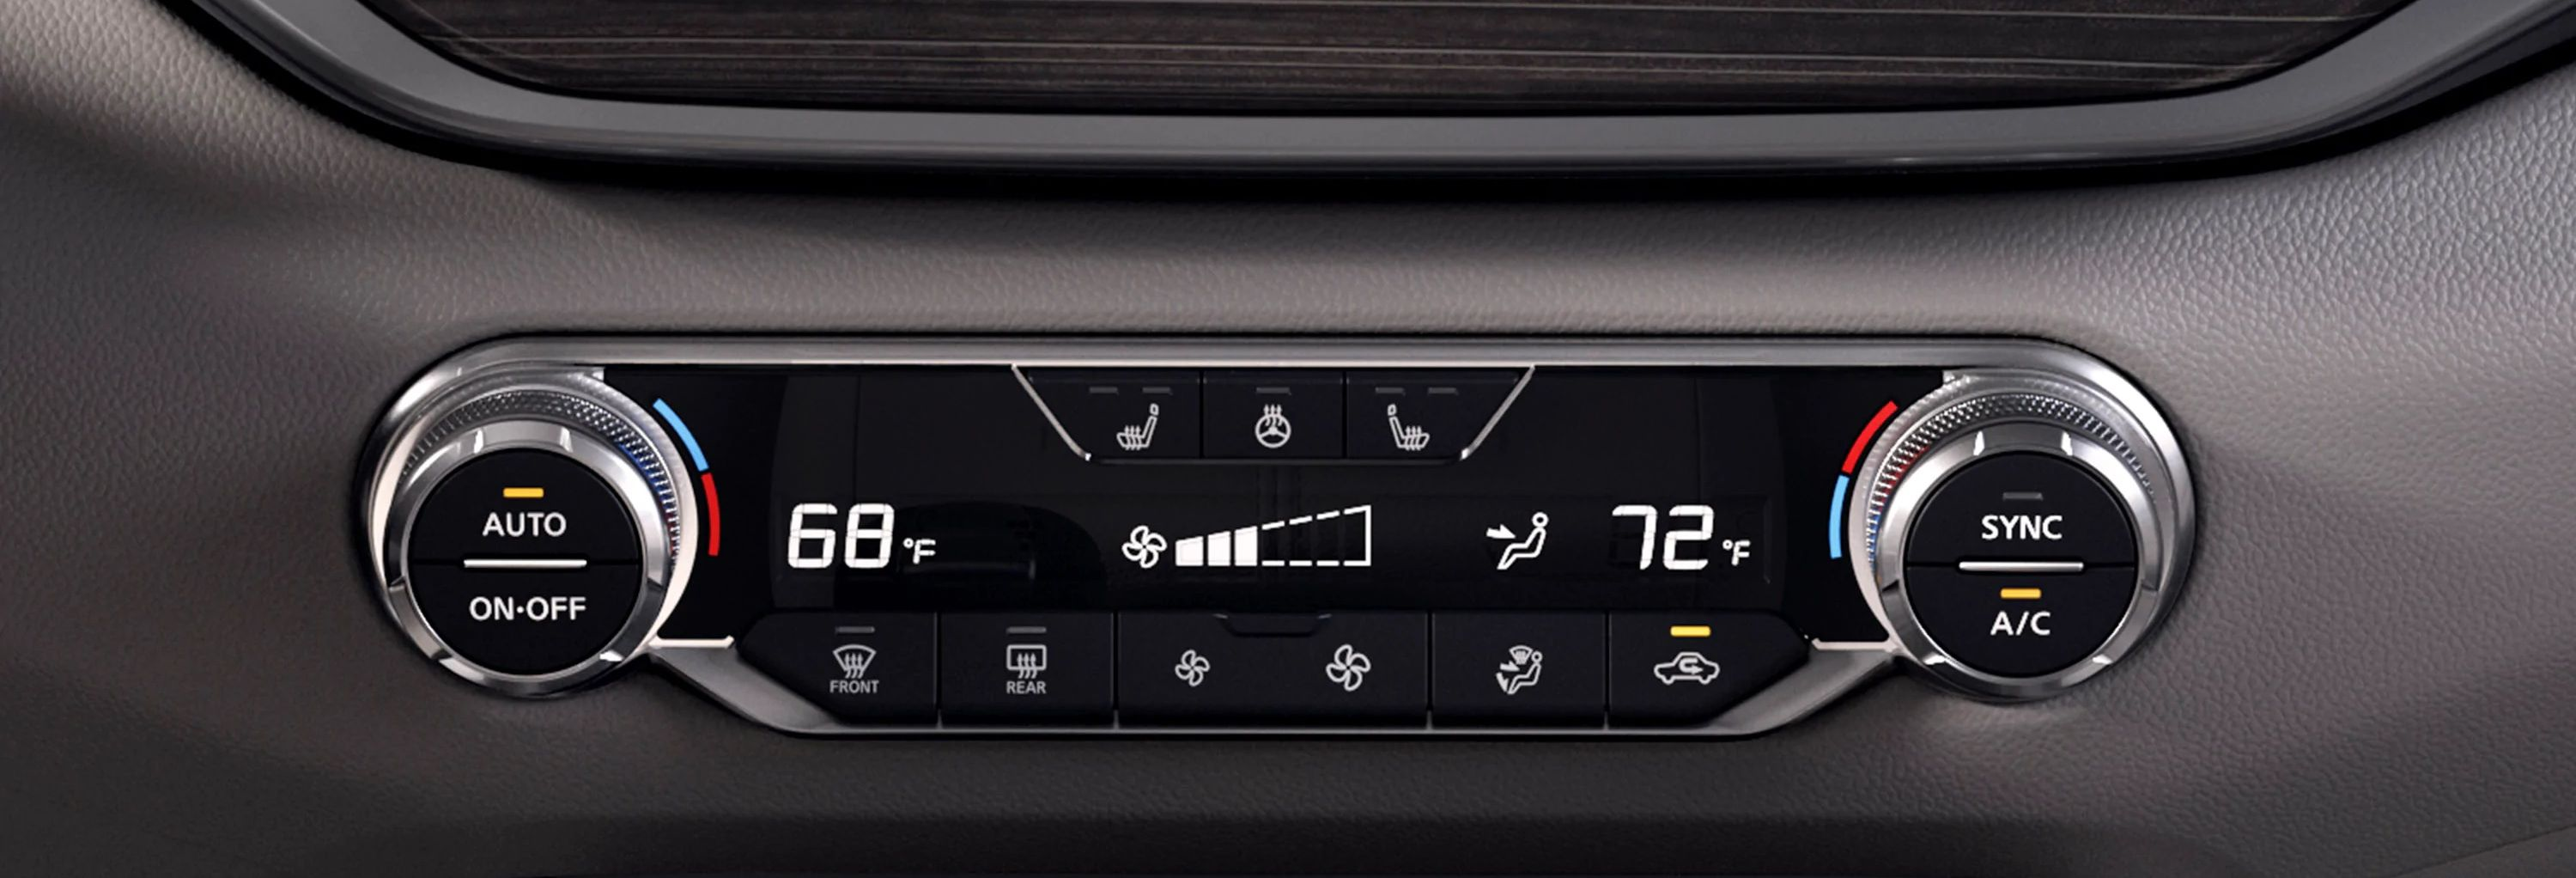 2019 Altima Dual-Zone Automatic Temperature Control